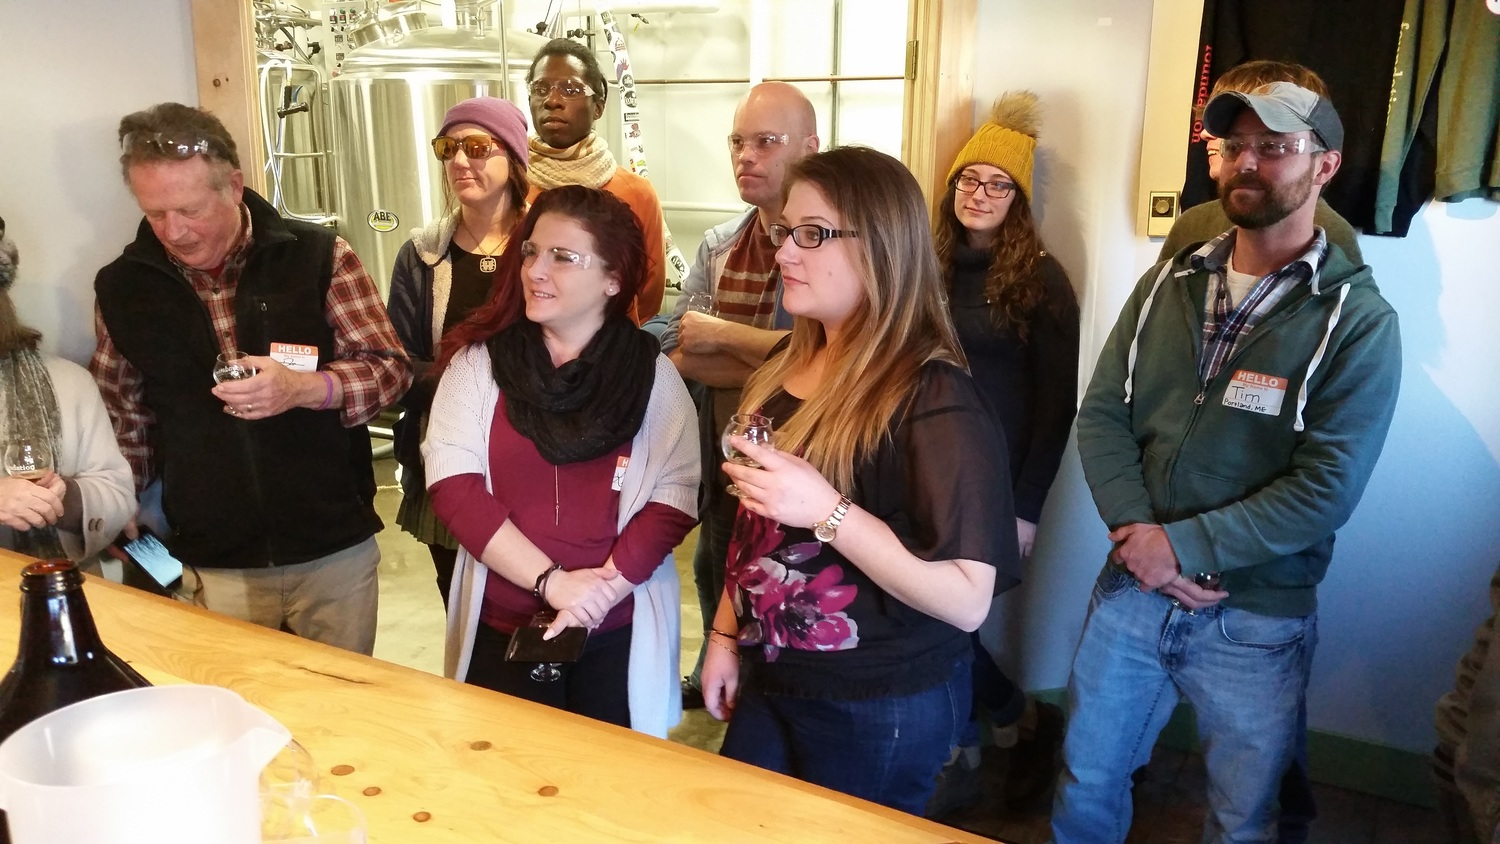 The Andy's group listens to Foundation Brewing's Adam Stein describe the company and the beers.